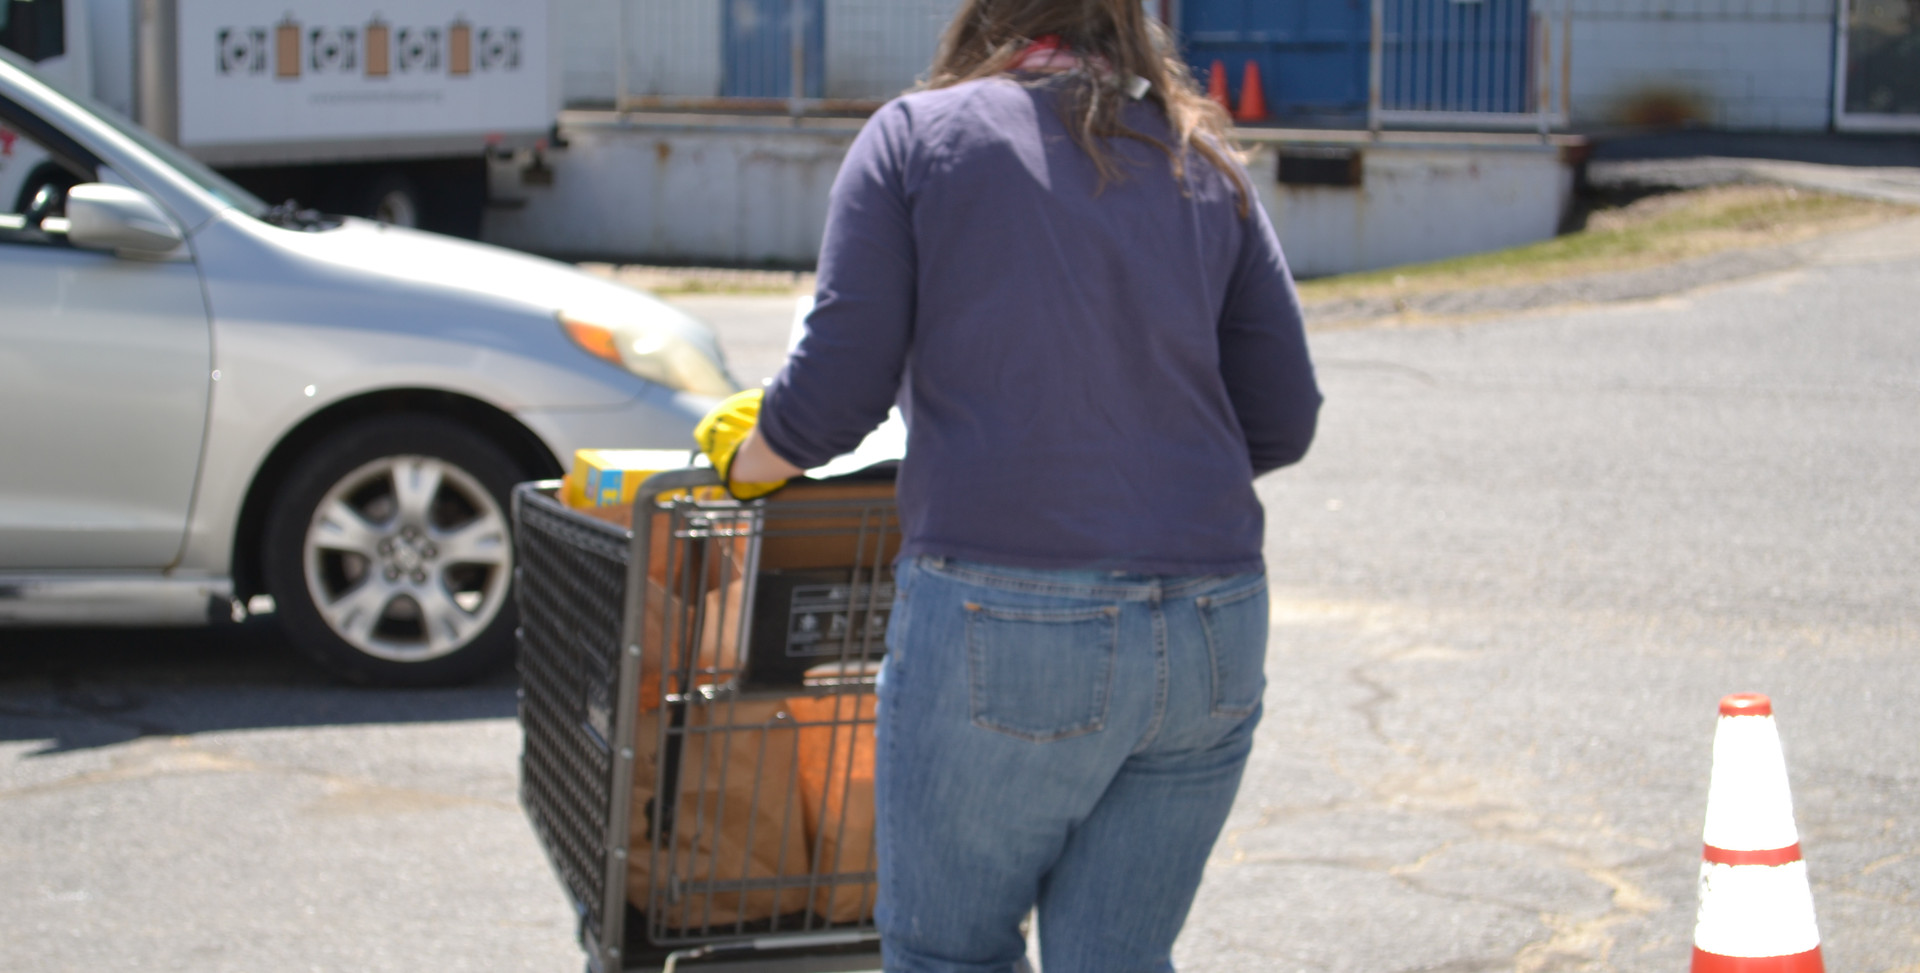 A volunteer brings food to a client's car